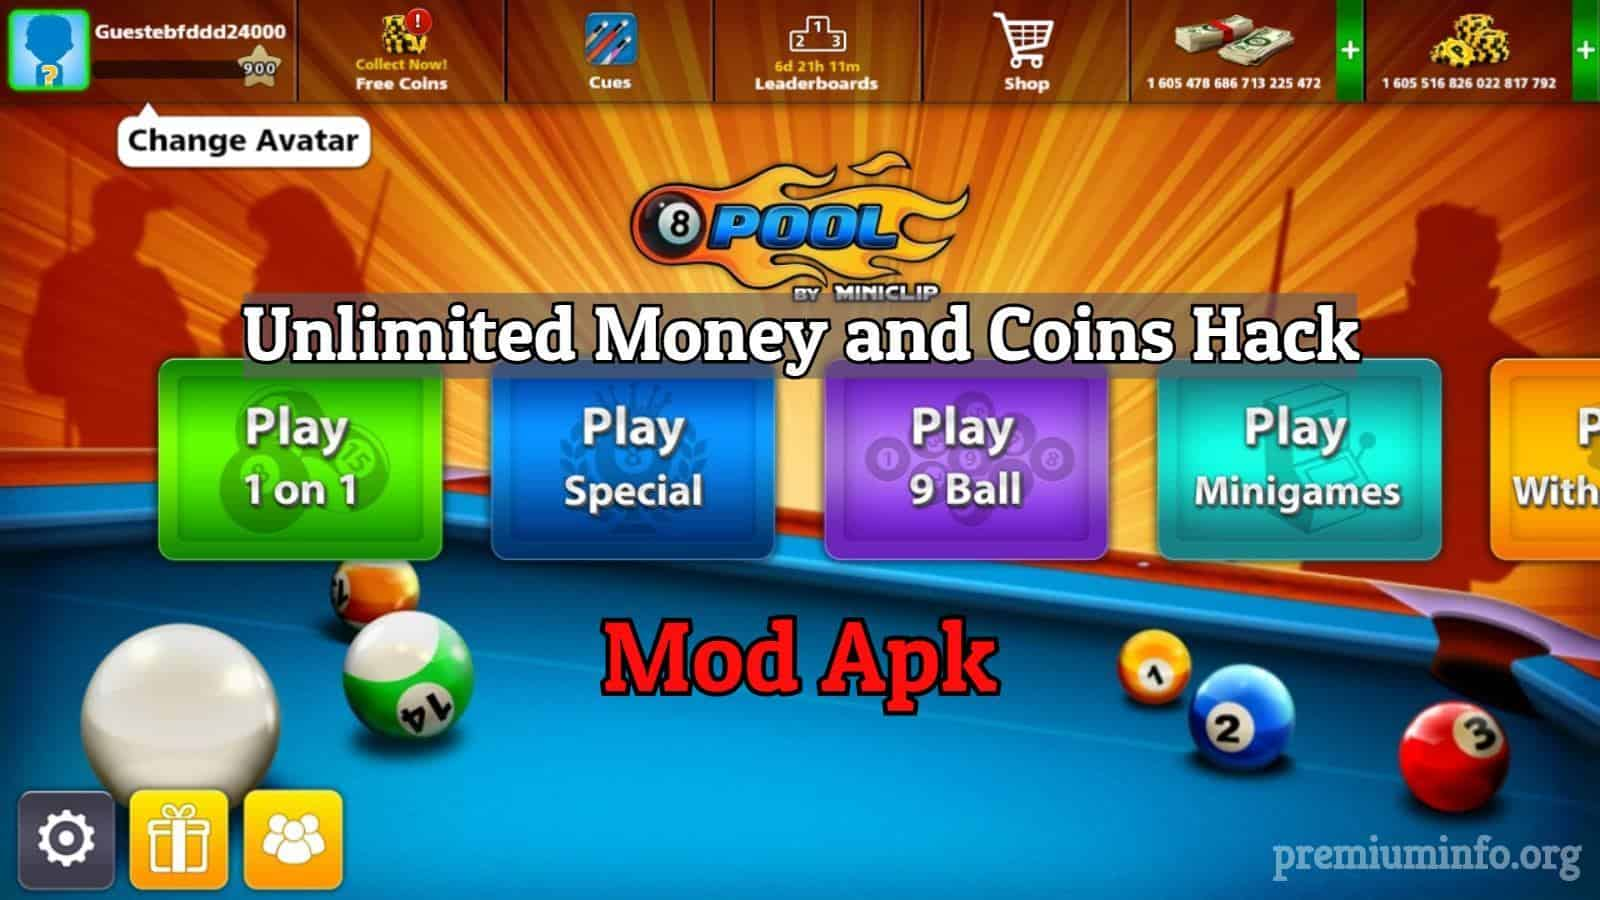 free account 8 ball pool 2019